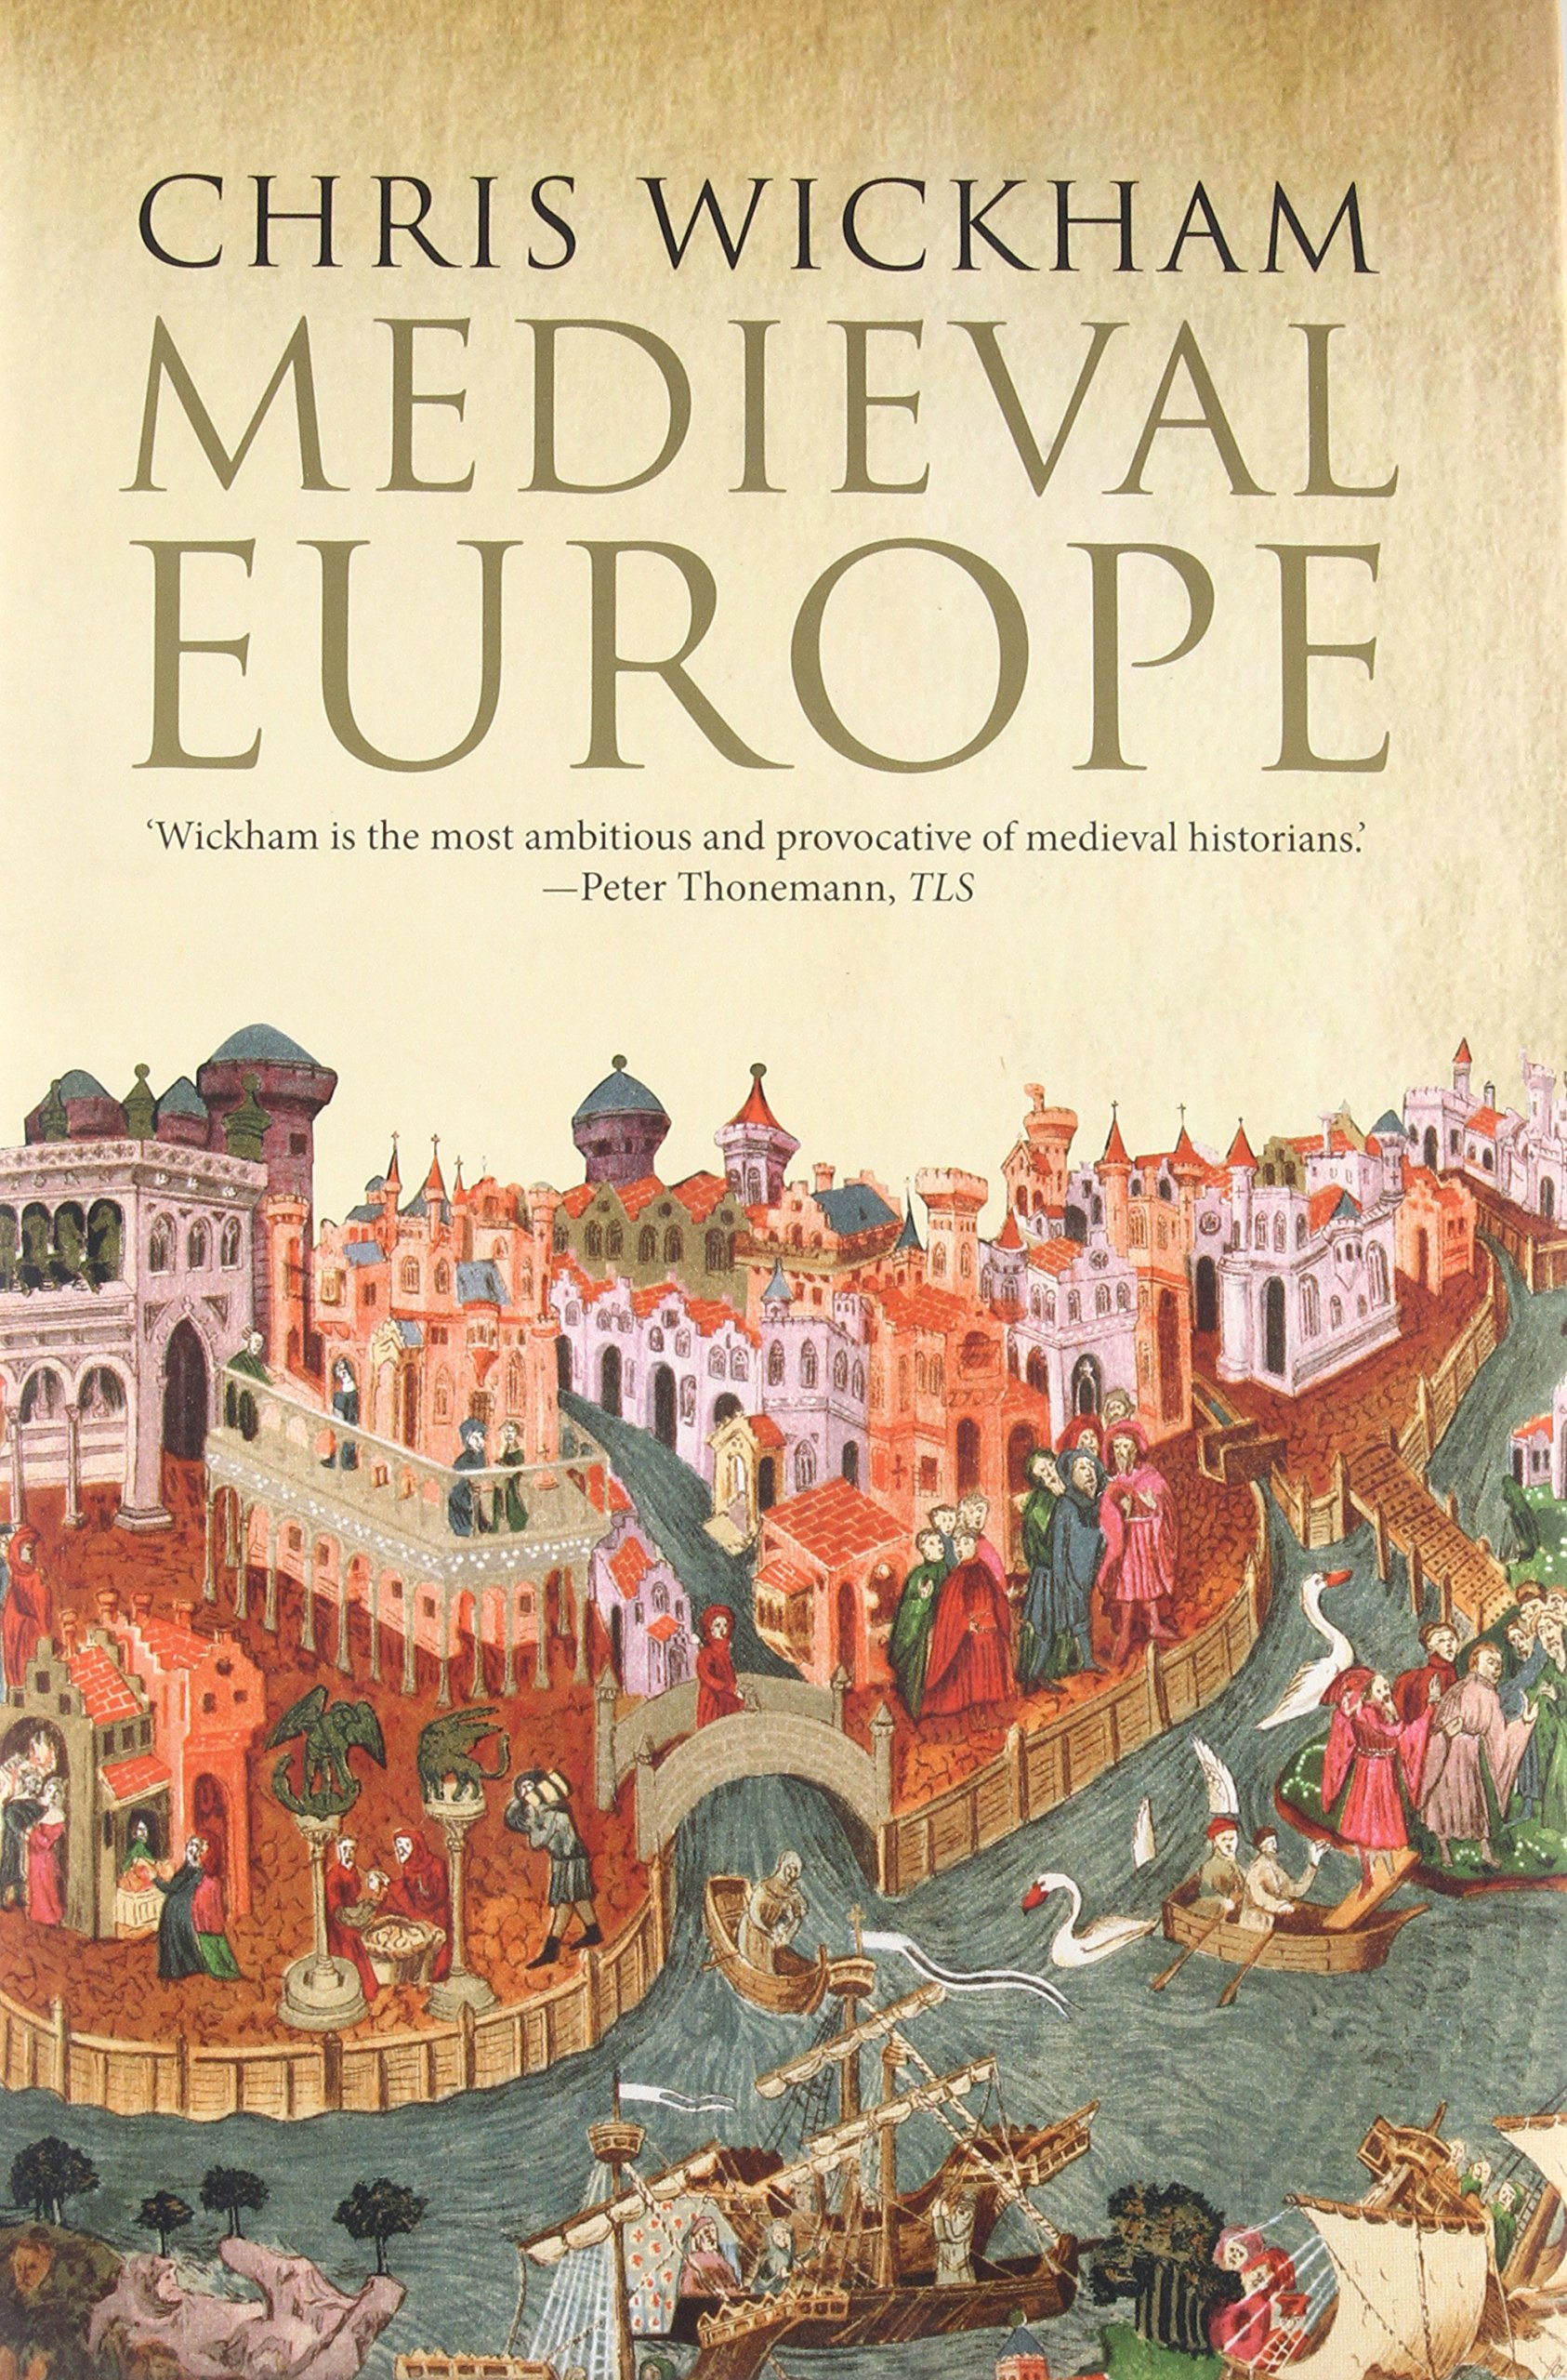 a history of europe during the renaissance While northern italy was not richer in resources than many other parts of europe,  the level of development, stimulated by trade, allowed it to prosper in particular.